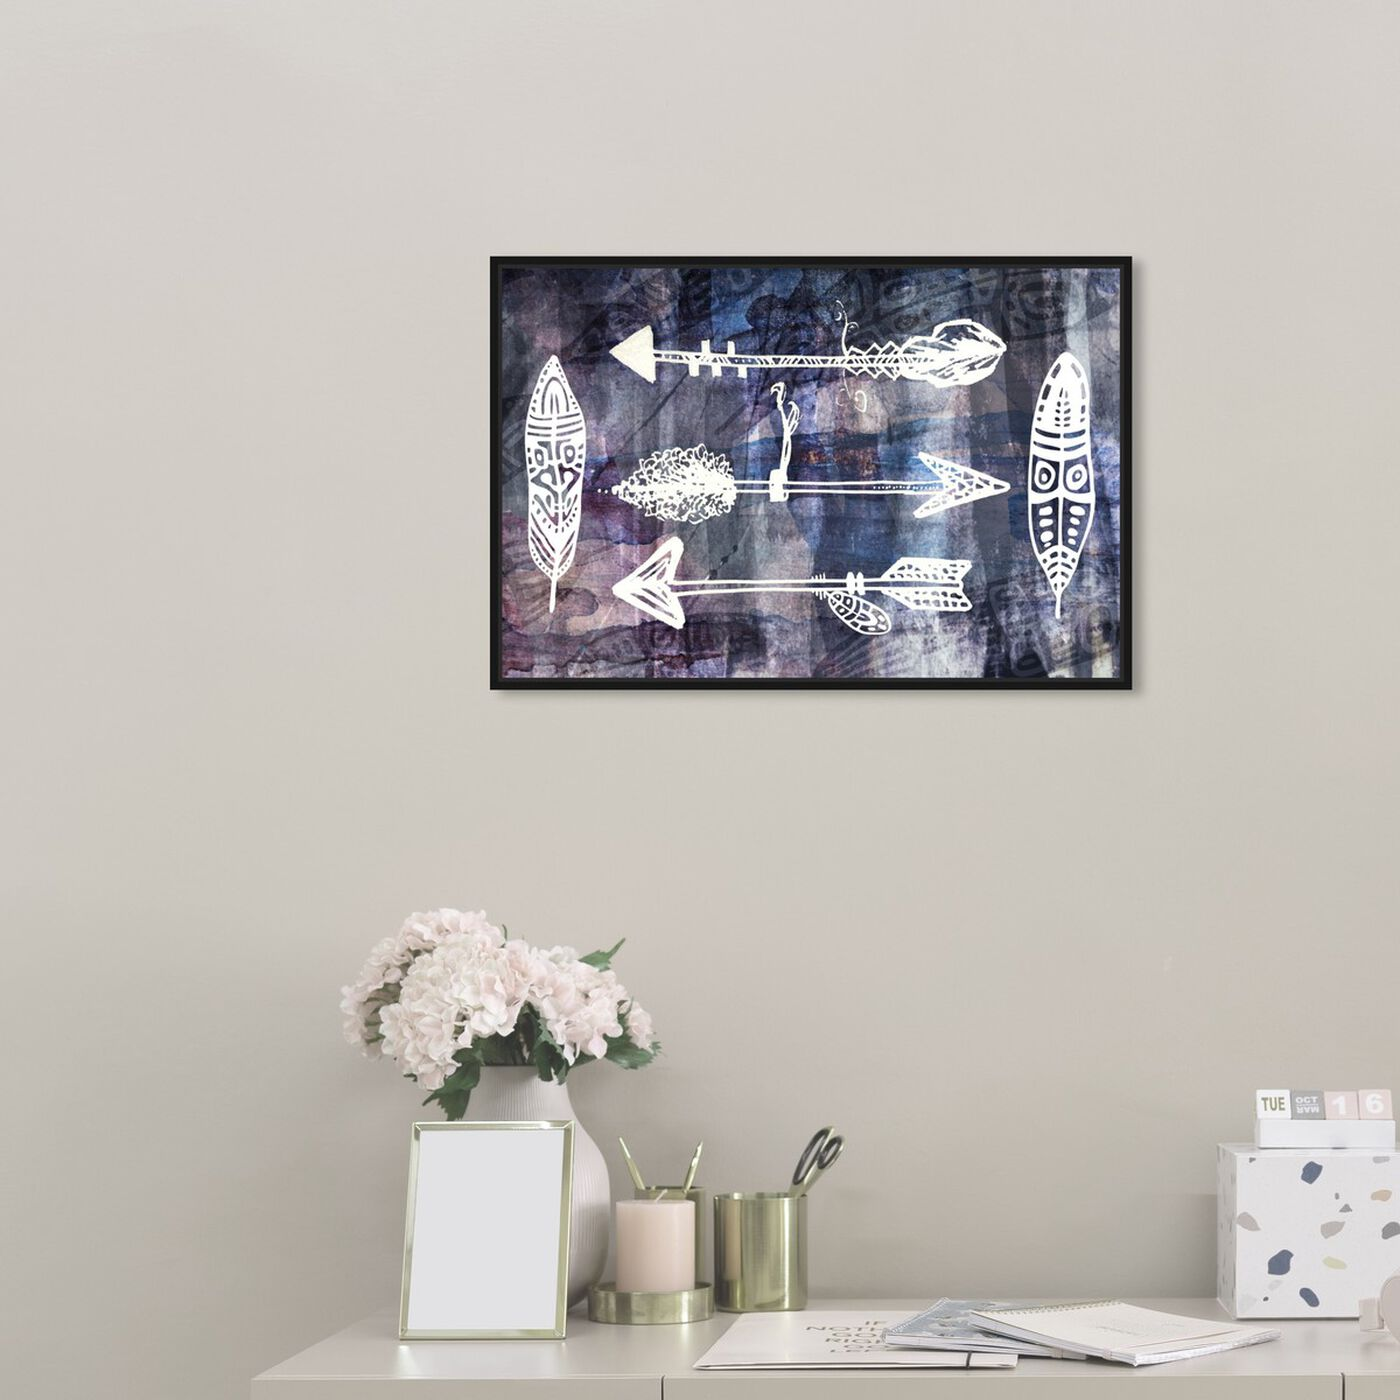 Hanging view of Ethnica featuring symbols and objects and shapes art.